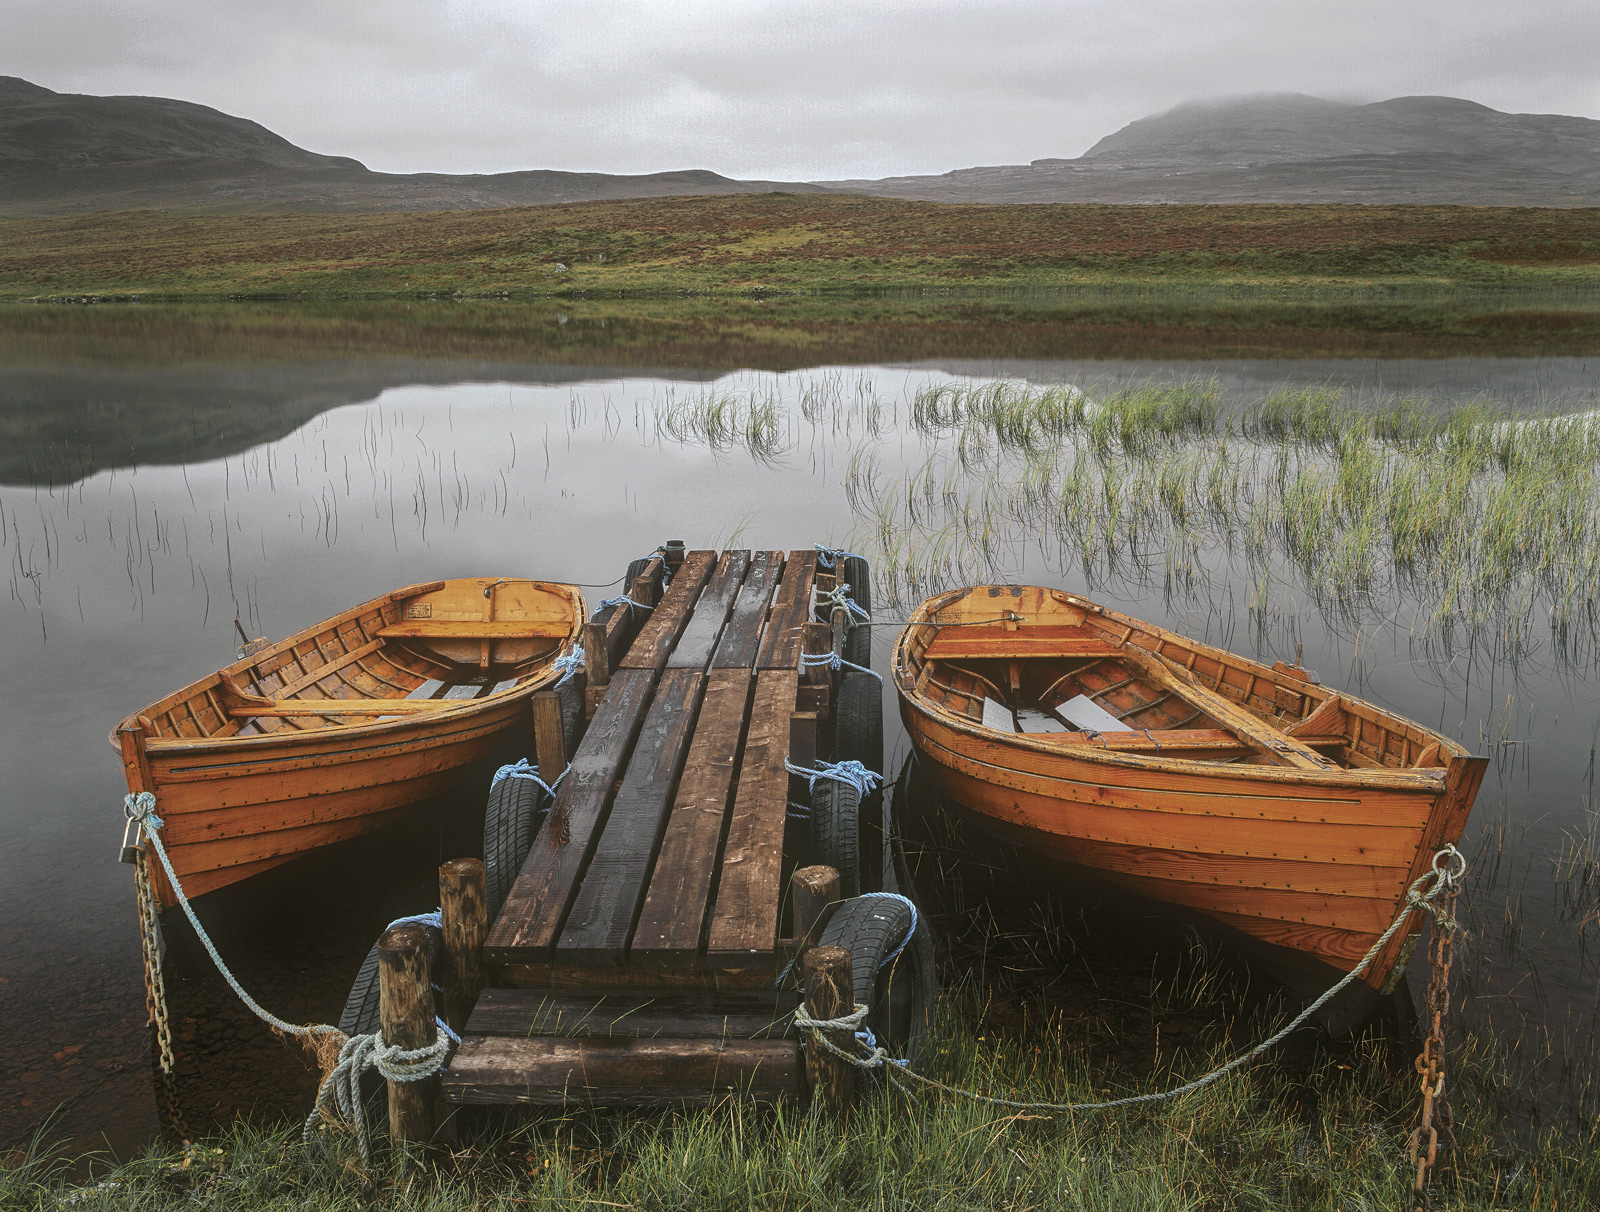 Twin wooden row boats moored together against a wooden gangplank jetty that juts out into a grey and slightly misty Loch Awe.&...